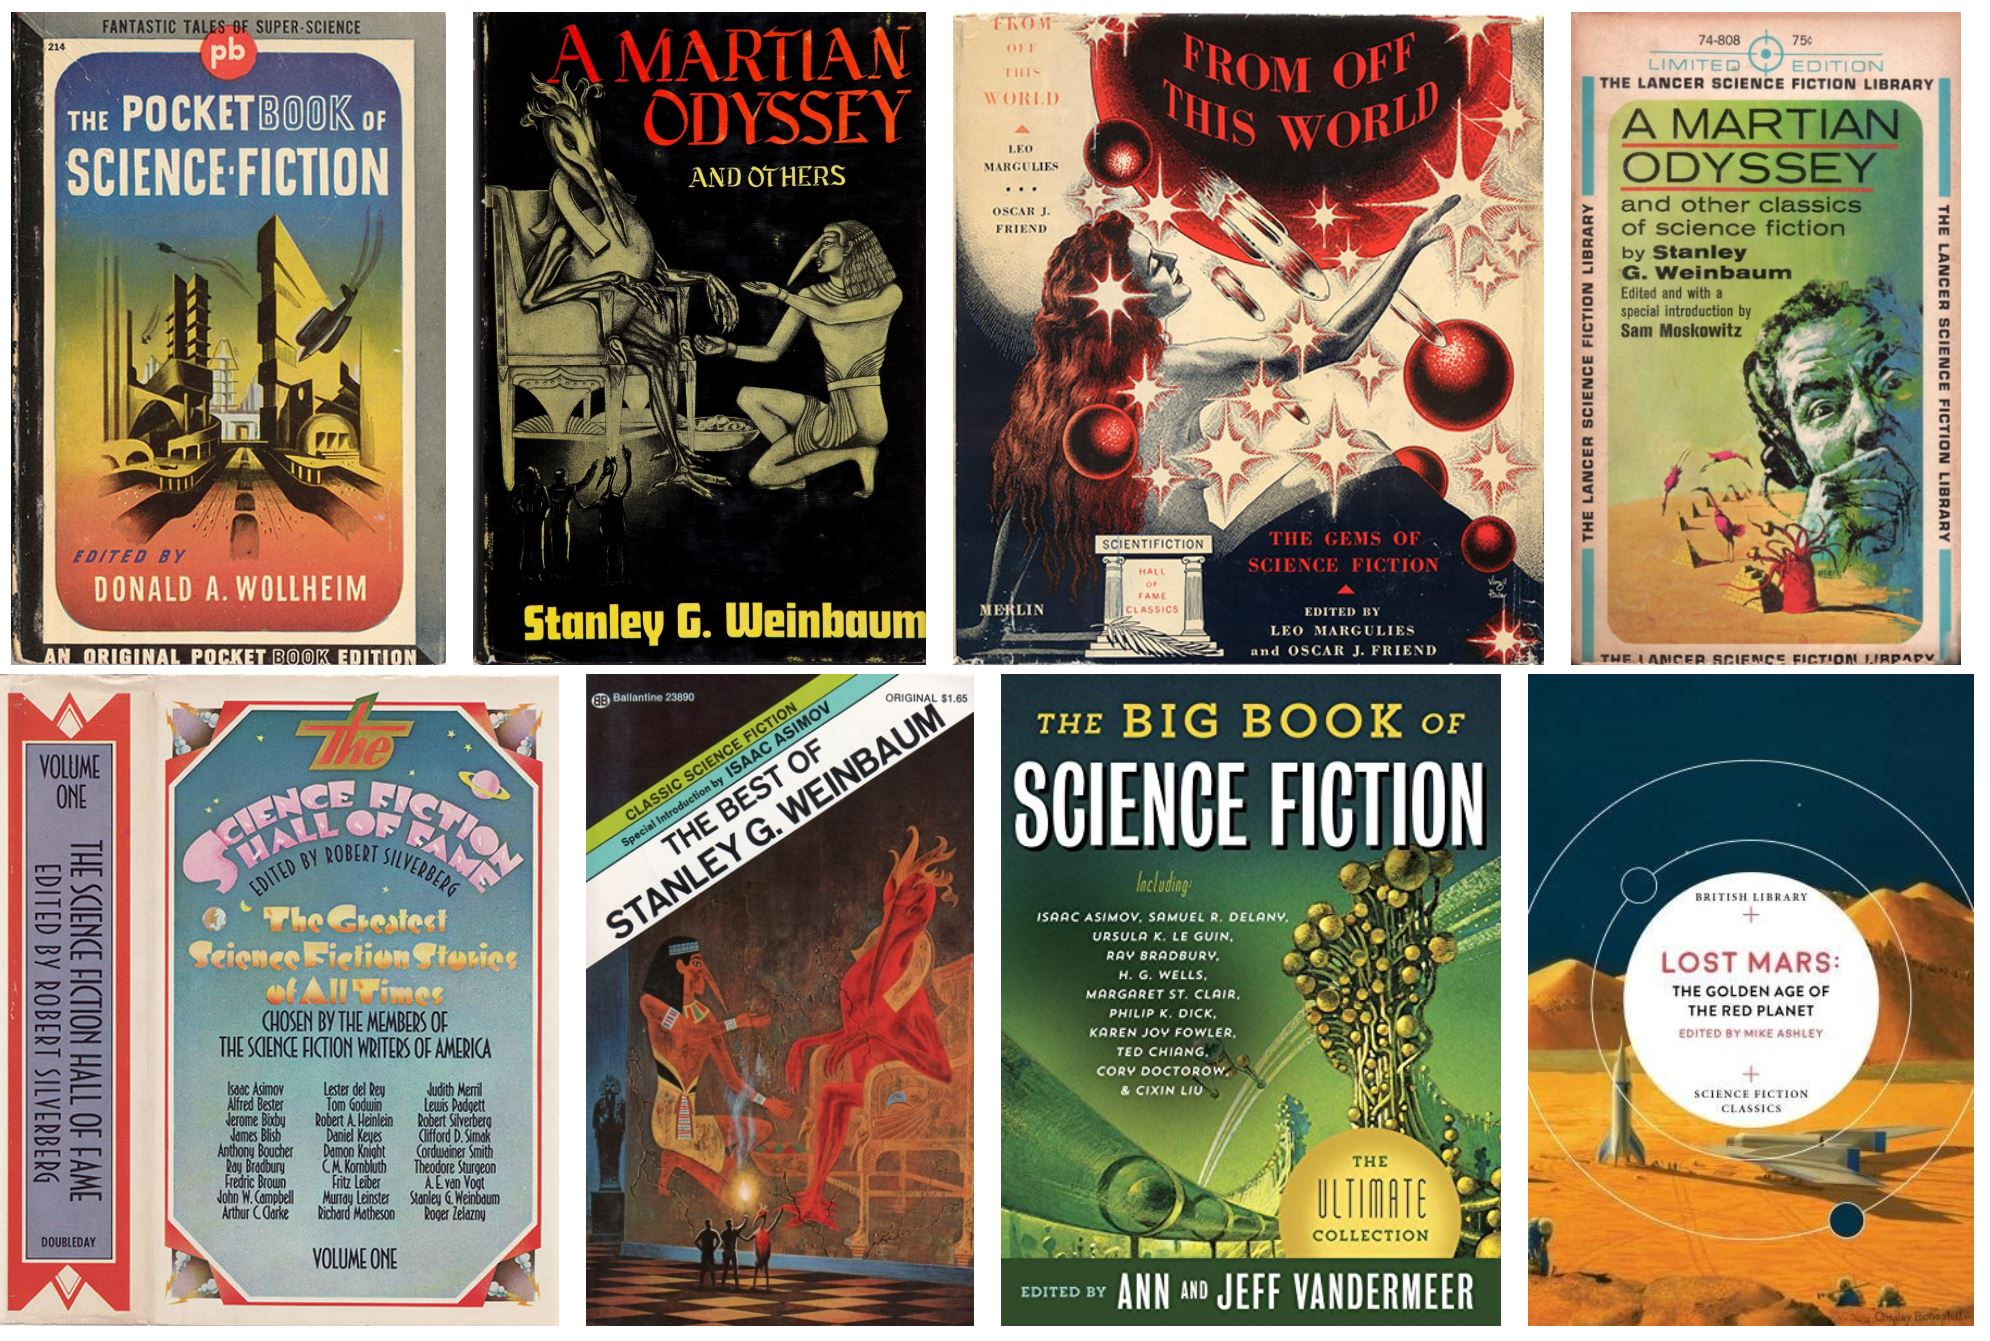 A Martian Odyssey in 8 anthologies